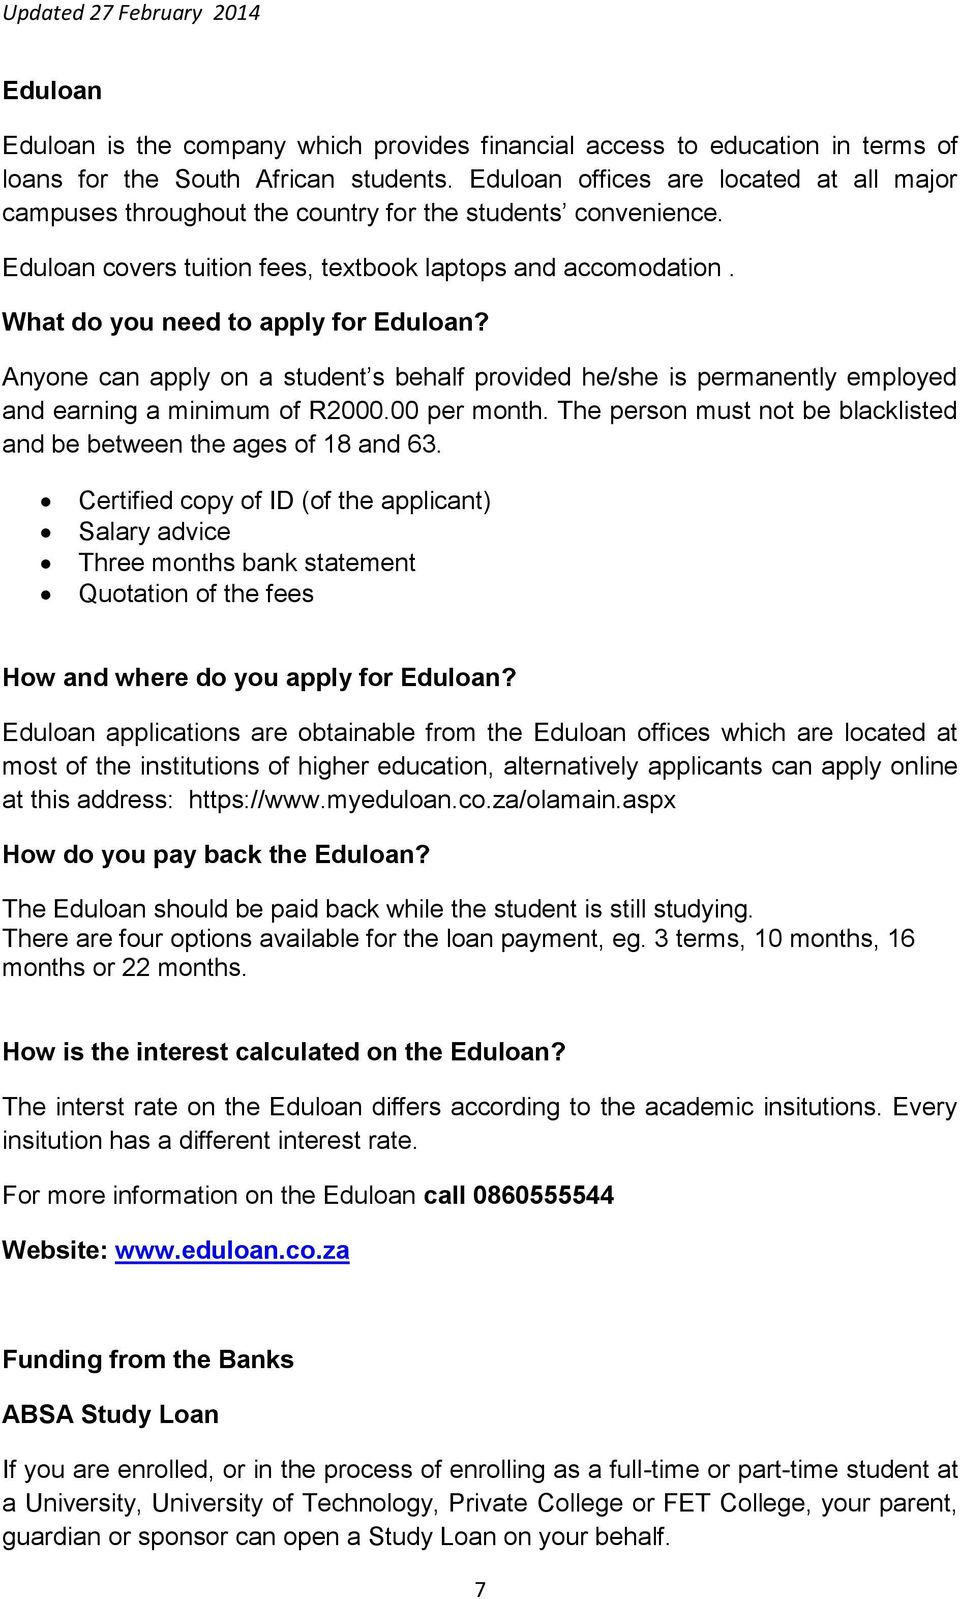 What do you need to apply for Eduloan? Anyone can apply on a student s behalf provided he/she is permanently employed and earning a minimum of R2000.00 per month.